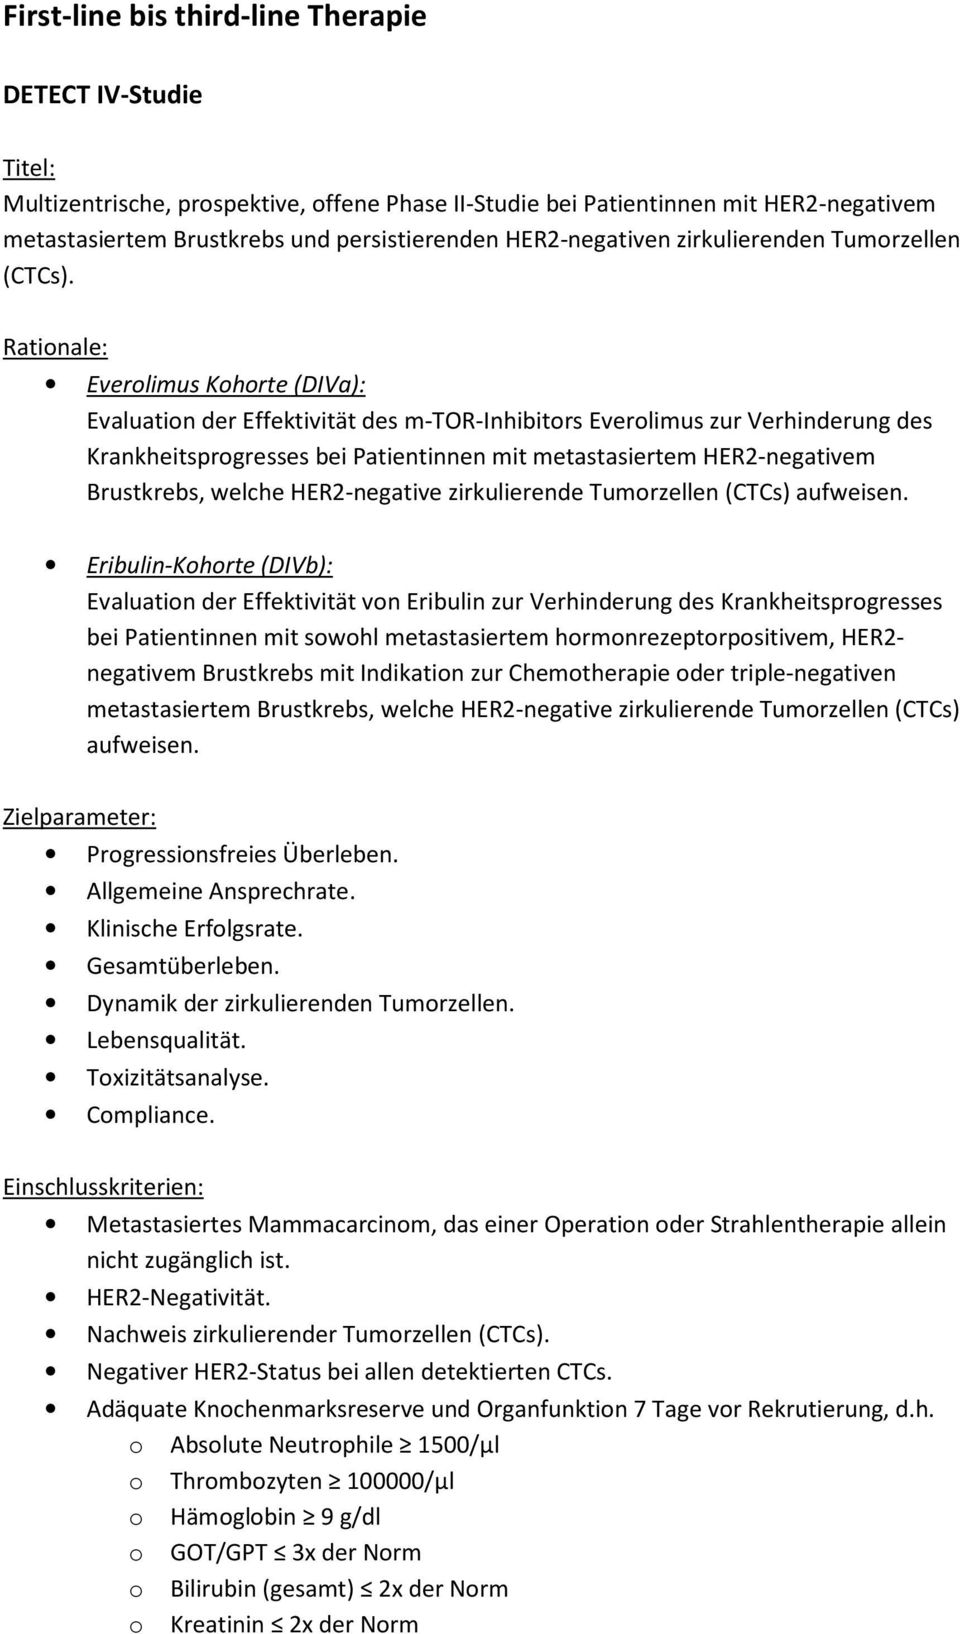 Rationale: Everolimus Kohorte (DIVa): Evaluation der Effektivität des m-tor-inhibitors Everolimus zur Verhinderung des Krankheitsprogresses bei Patientinnen mit metastasiertem HER2-negativem